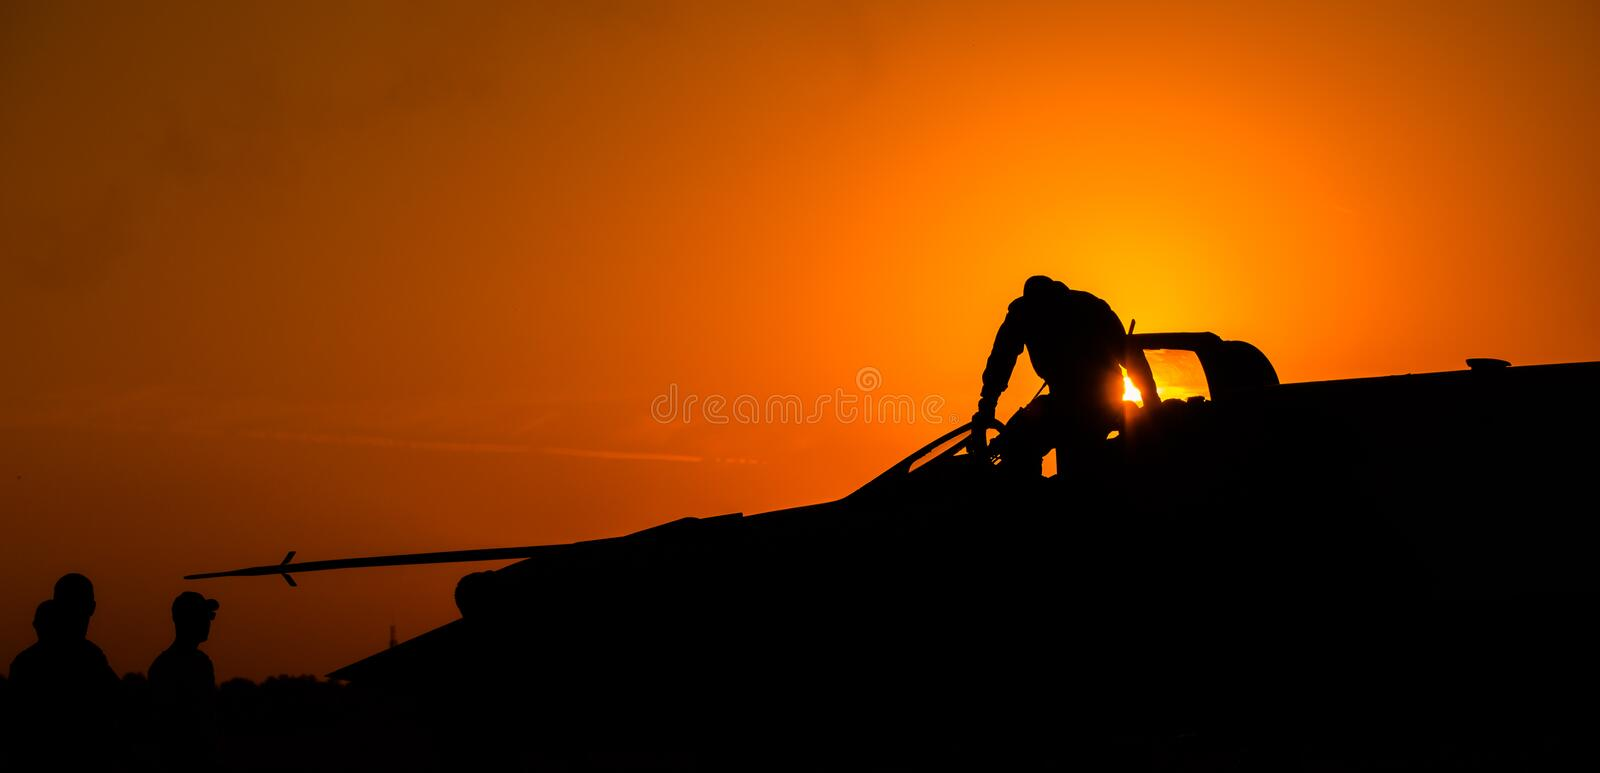 MiG-21 Lancer air fore pilot silhouette on sunset Top Gun fighter pilot royalty free stock images